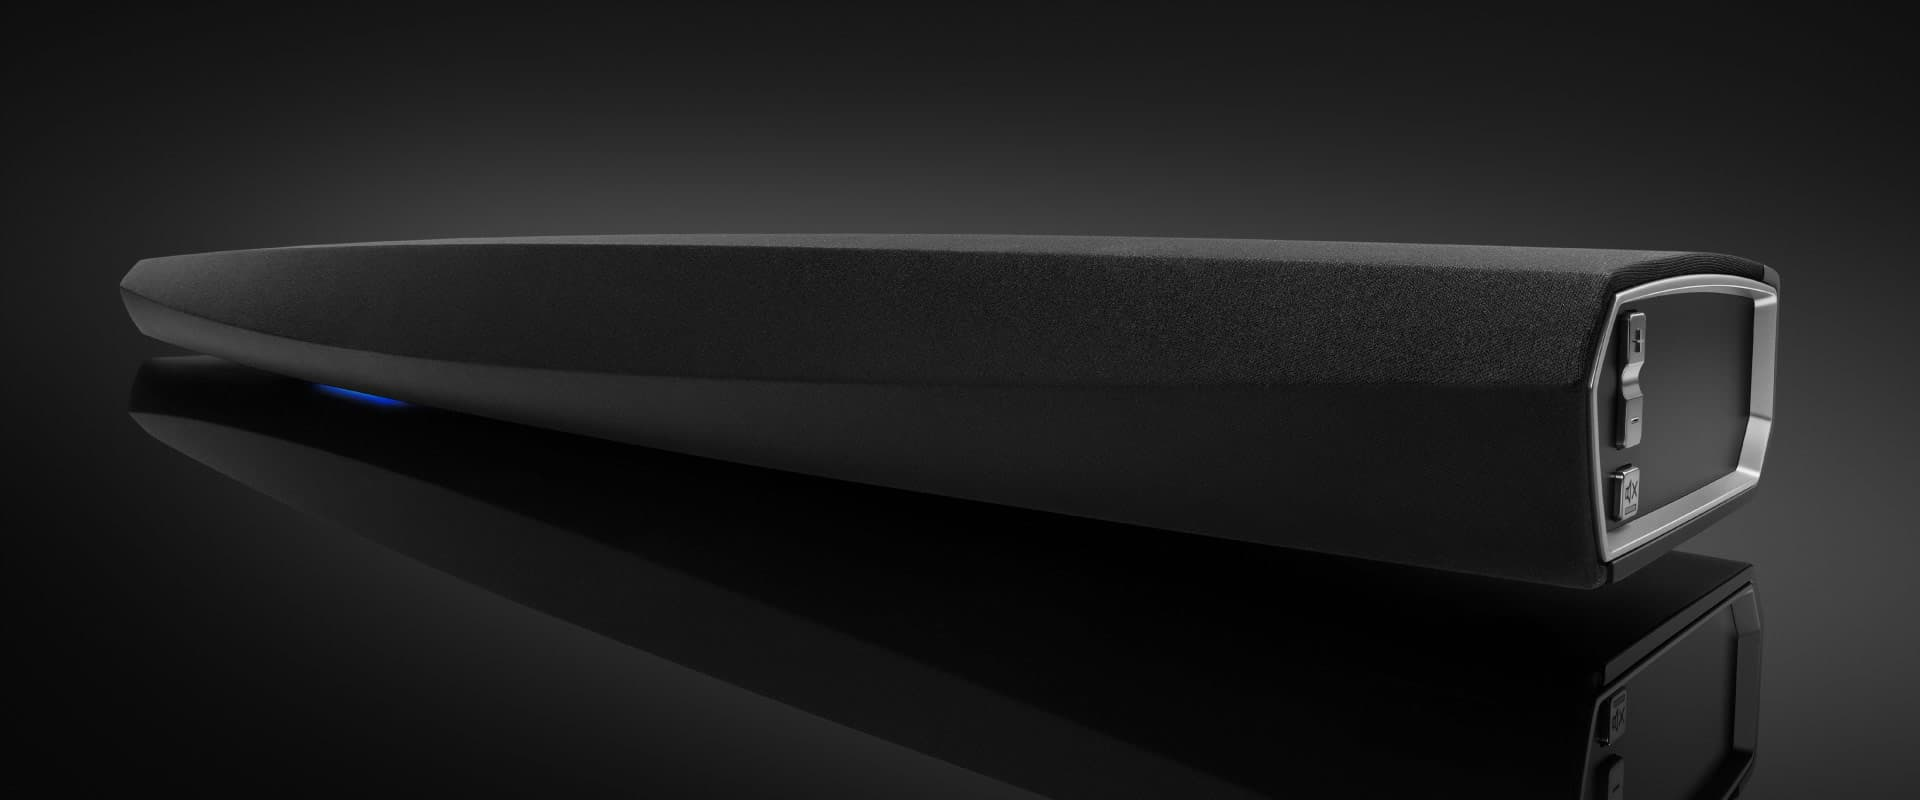 Really good soundbars for home cinema: some recommendations – Film Stories